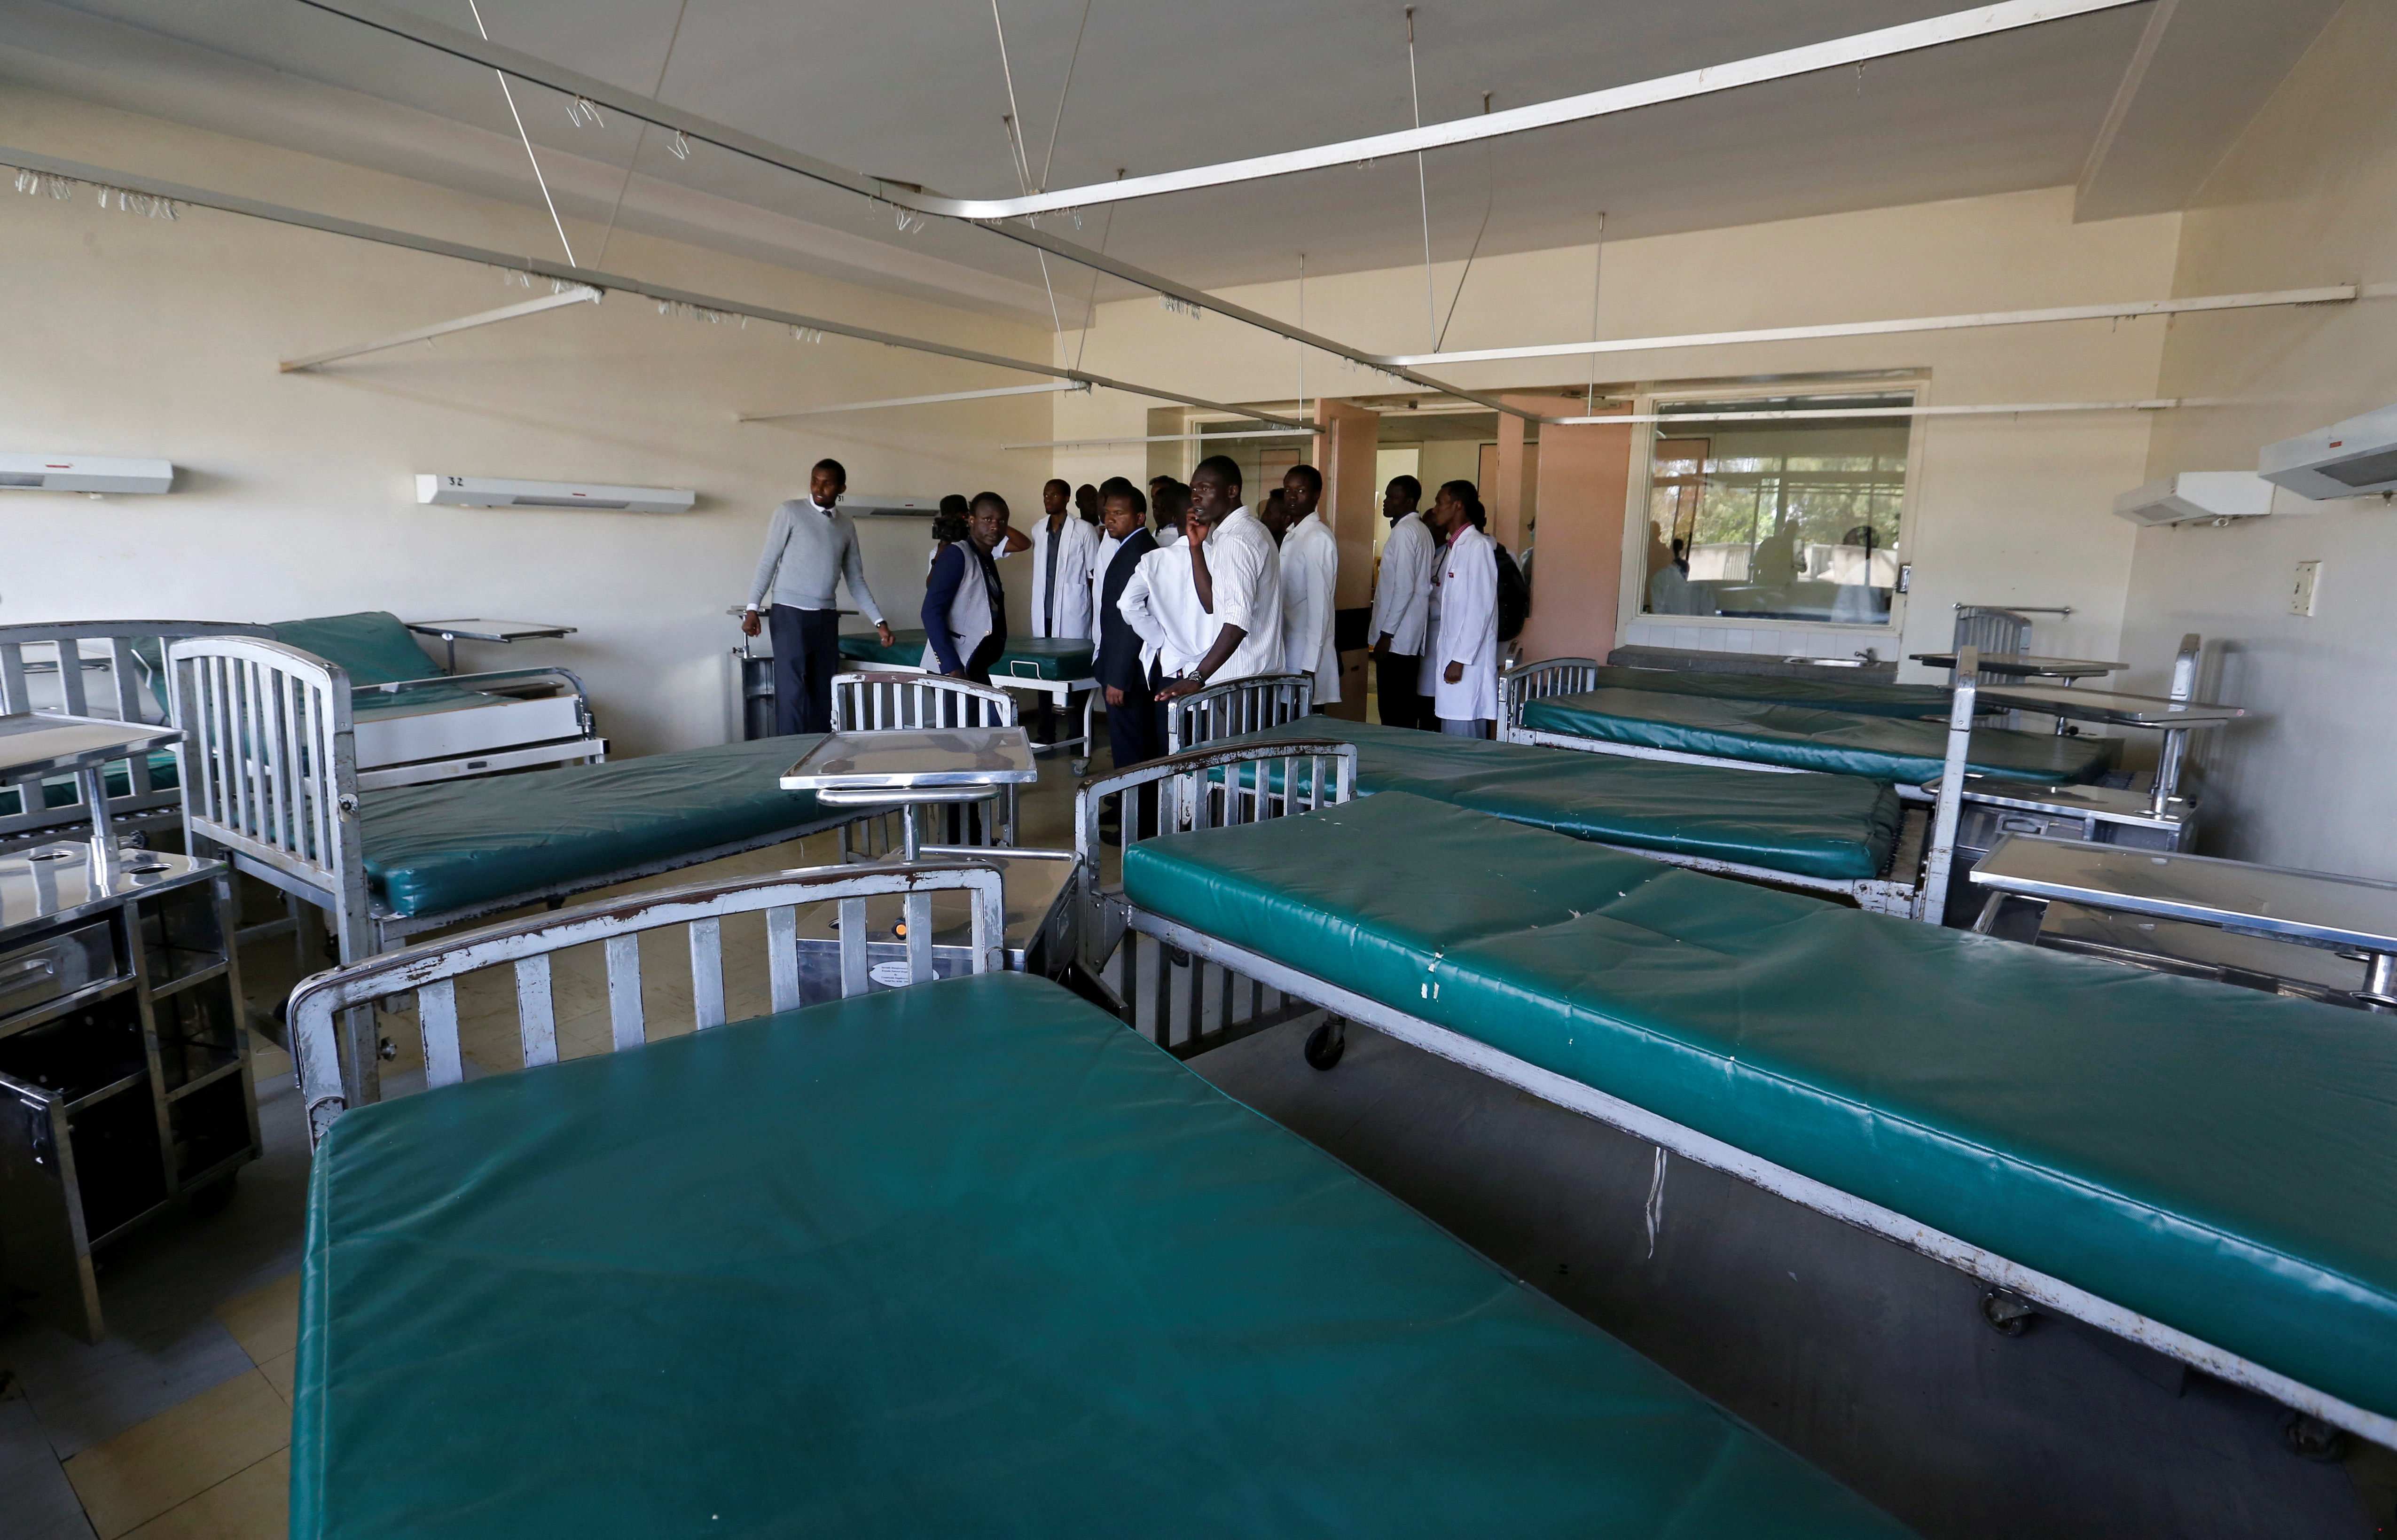 Kenyan student doctors gather inside a deserted labour ward at the Kenyatta National Hospital during a doctors' strike to demand fulfilment of a 2013 agreement between doctors' union and the government that would raise the medical practitioners pay and improve working conditions in Nairobi, Kenya, January 19, 2017.